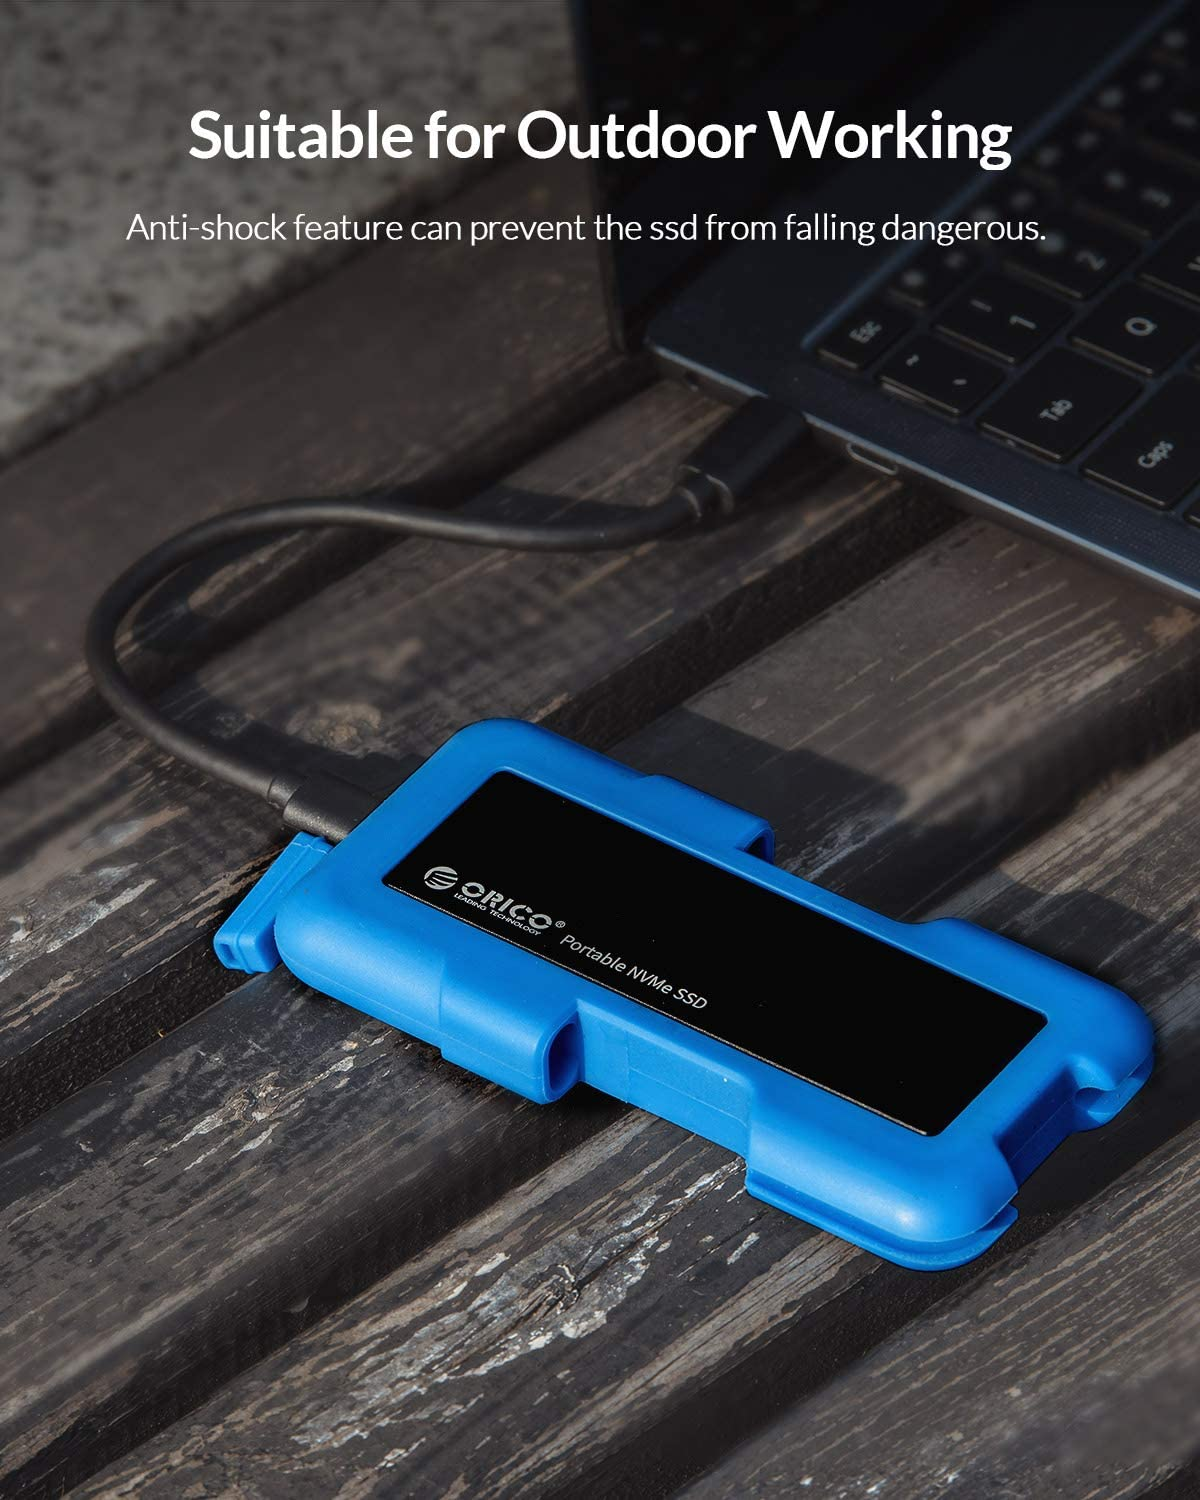 ORICO 10Gb//s Portable External Solid State Drives M.2 NVME SSD Outdoor Shockproof Crushproof Hard Drive Rugged Flash Drive USB C for PCs Xbox Blue-1T PS4 and More Macs